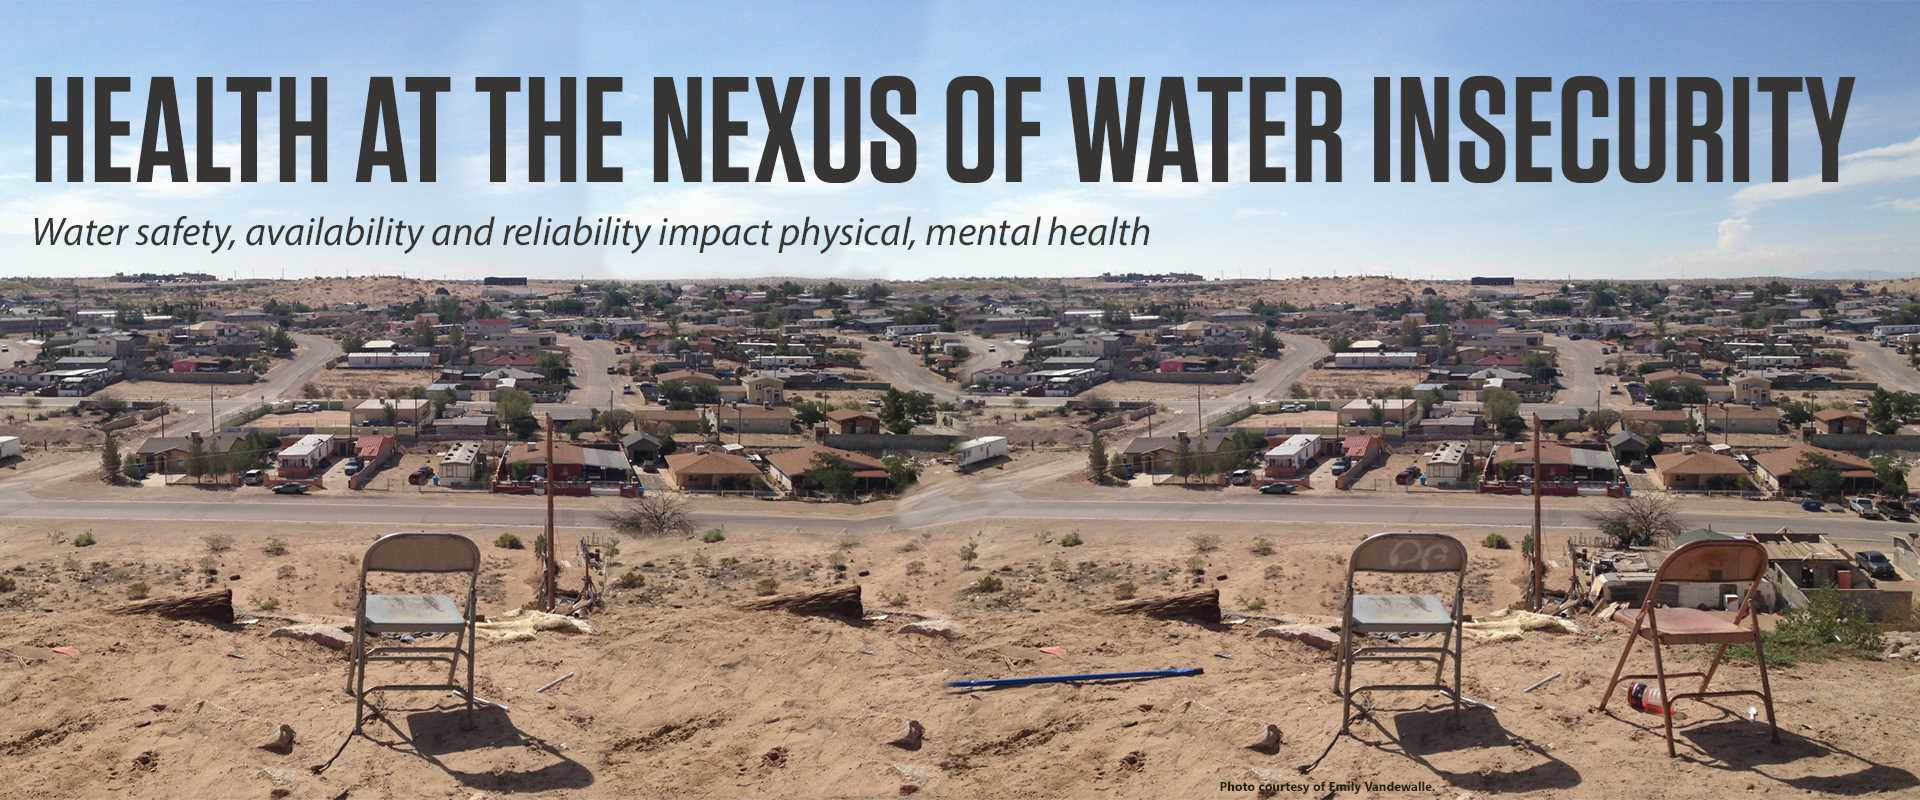 Health at the Nexus of Water Insecurity